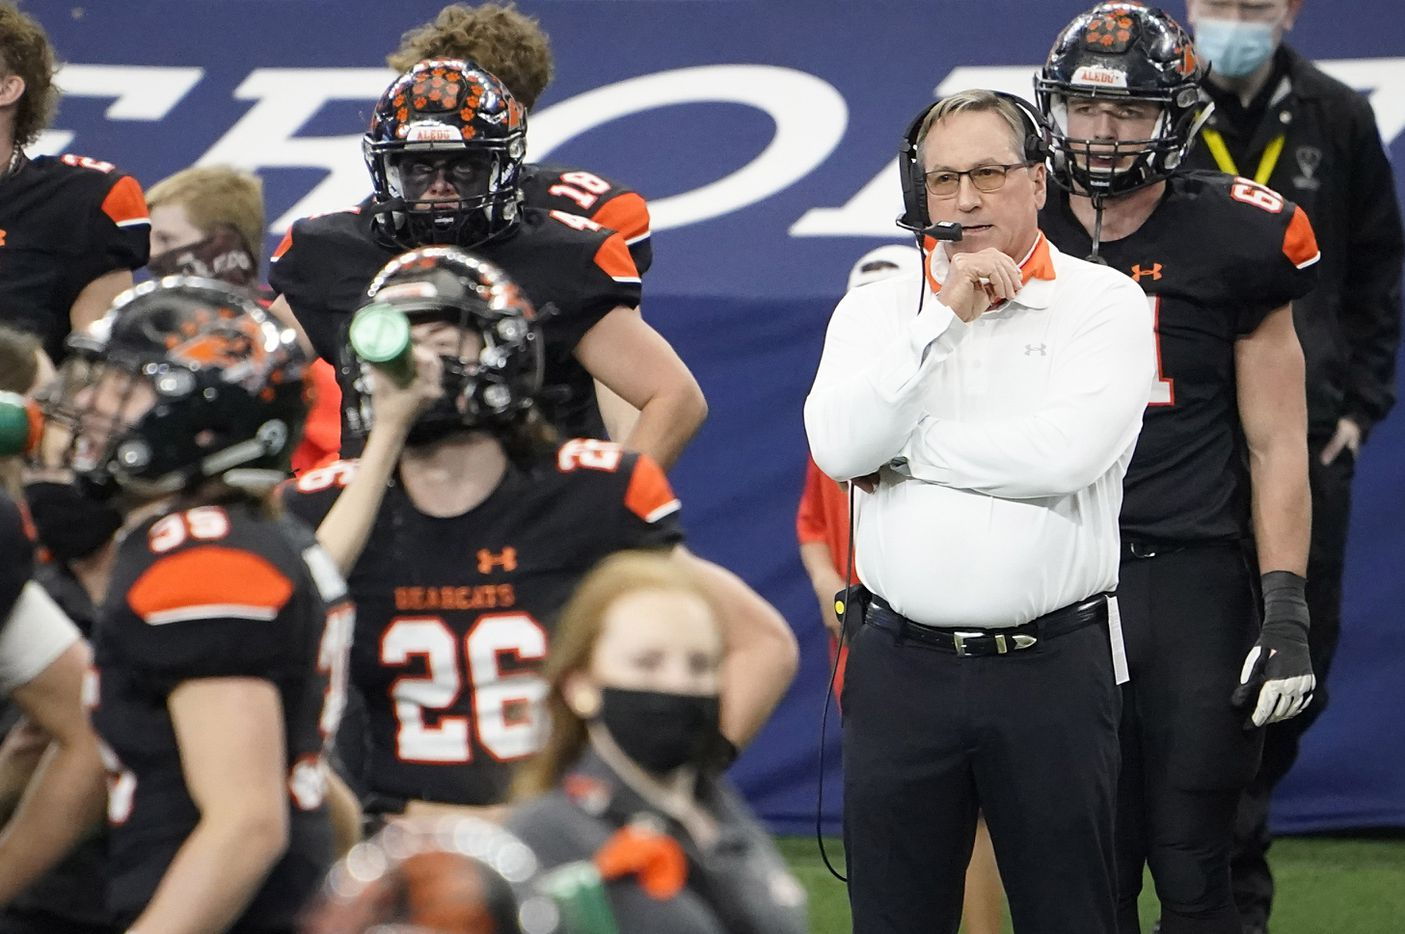 Aledo head coach Tim Buchanan works on the sidelines during the first half of the Class 5A Division II state football championship game against Crosby at AT&T Stadium on Friday, Jan. 15, 2021, in Arlington. (Smiley N. Pool/The Dallas Morning News)